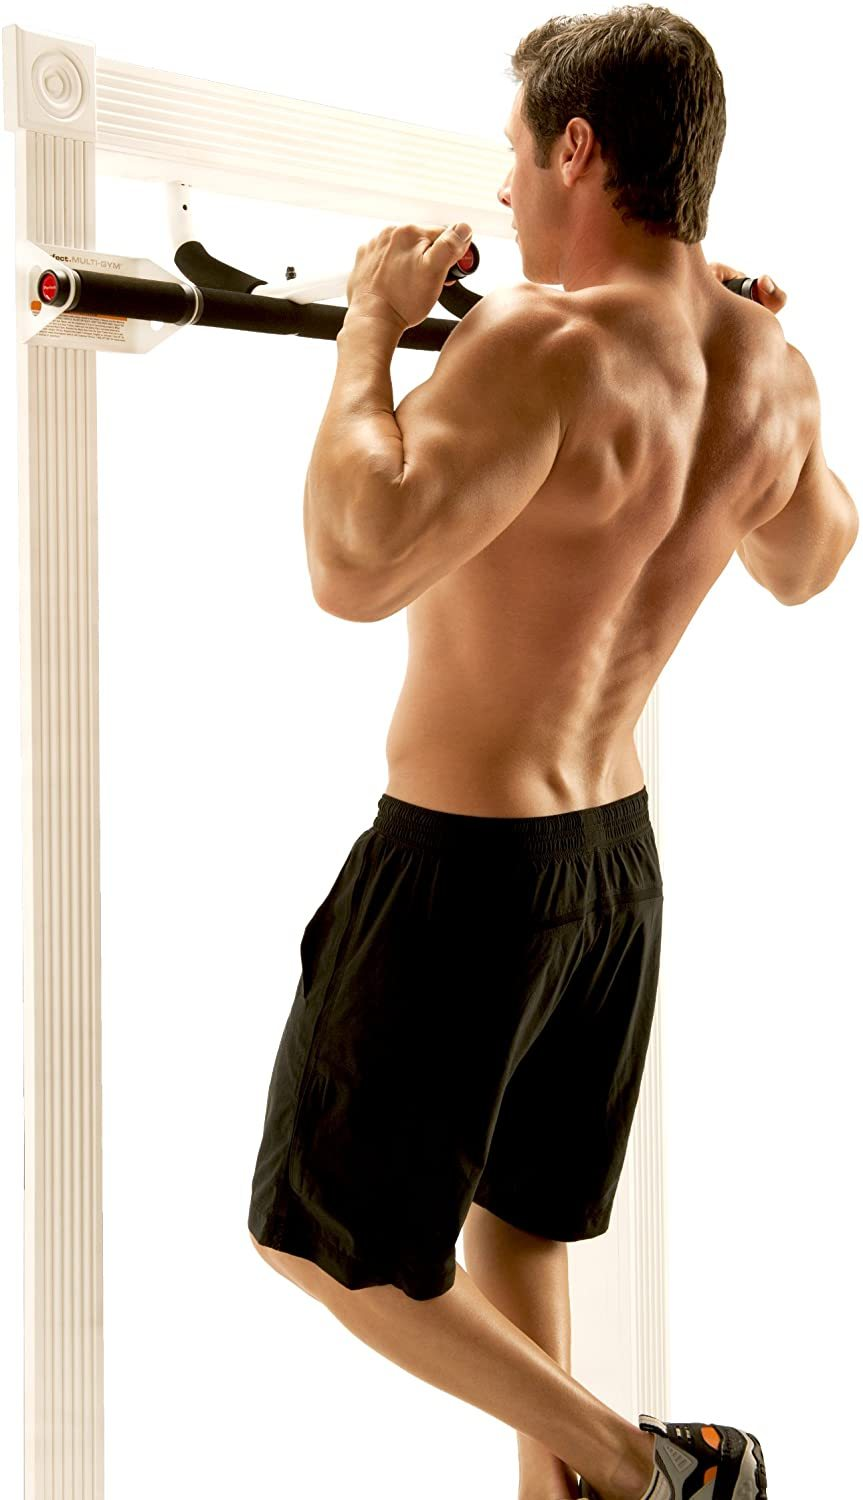 Multi-Gym Doorway Pull Up Bar and Portable Gym System, Original